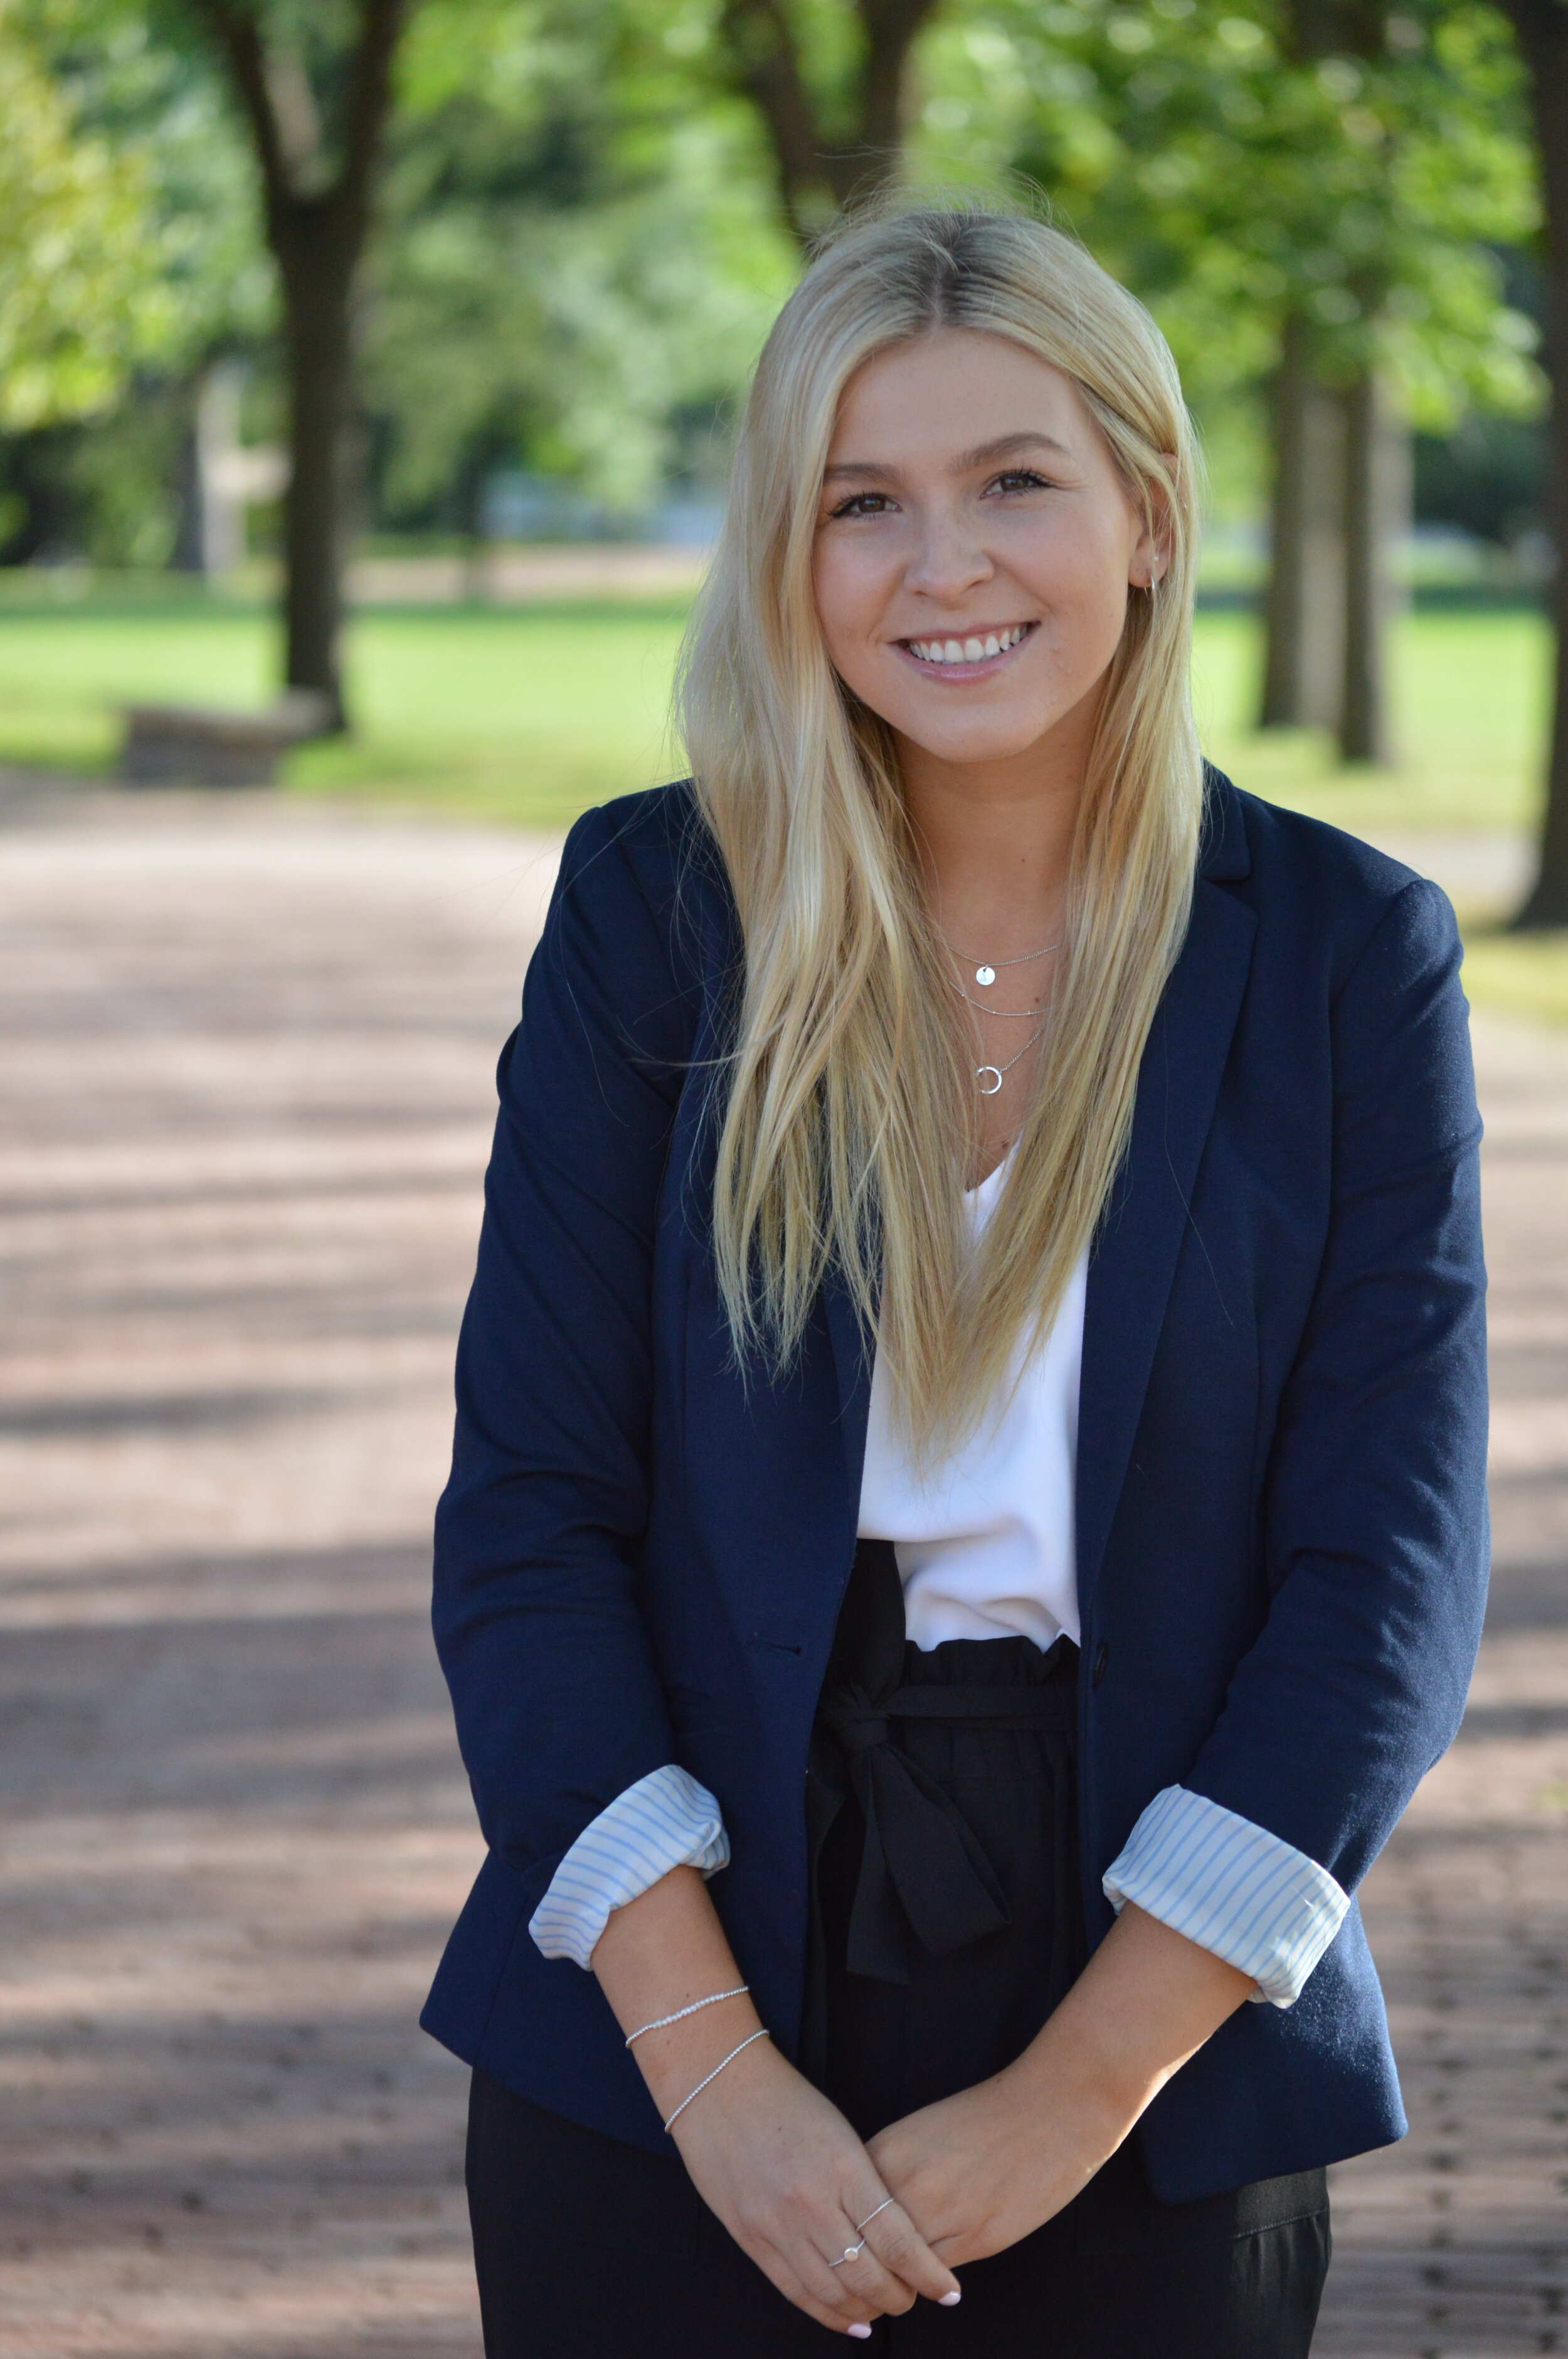 """Marketing lead - Name: Madison BoyackProgram: 5th Year Marketing Management (Co-op)3 favourite things: Travelling, Concerts and Friends/FamilyFavourite TED Talk: """"My Philosophy for a Happy Life"""" by Sam Berns"""